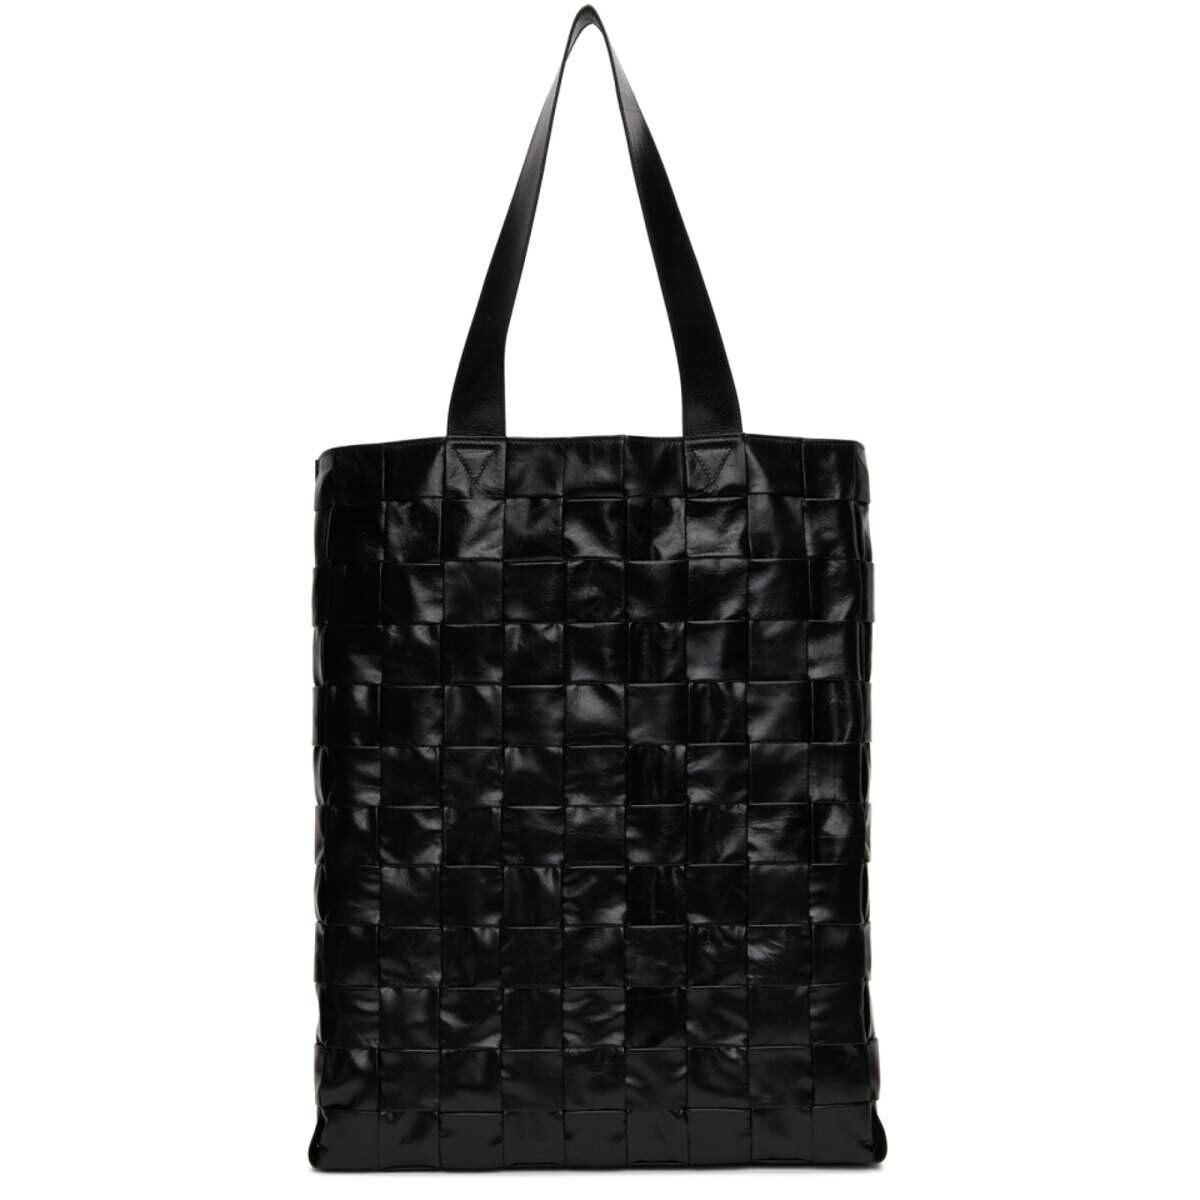 Bottega Veneta Black The Cassette Tote Ssense USA MEN Men ACCESSORIES Mens BAGS